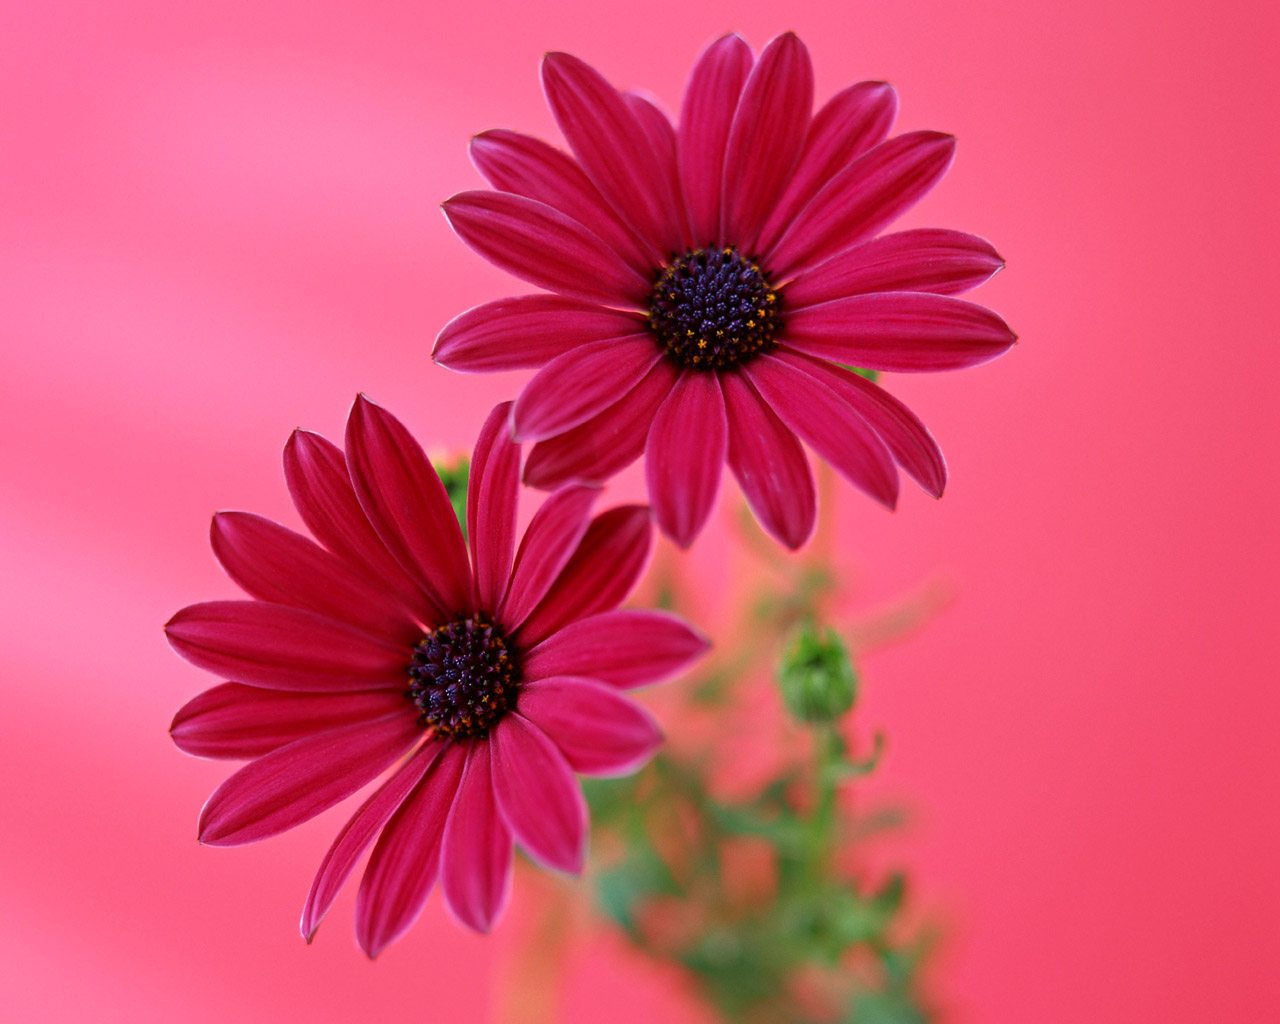 Gerbera Daisy desktop Wallpapers   HD Wallpapers 15566 1280x1024